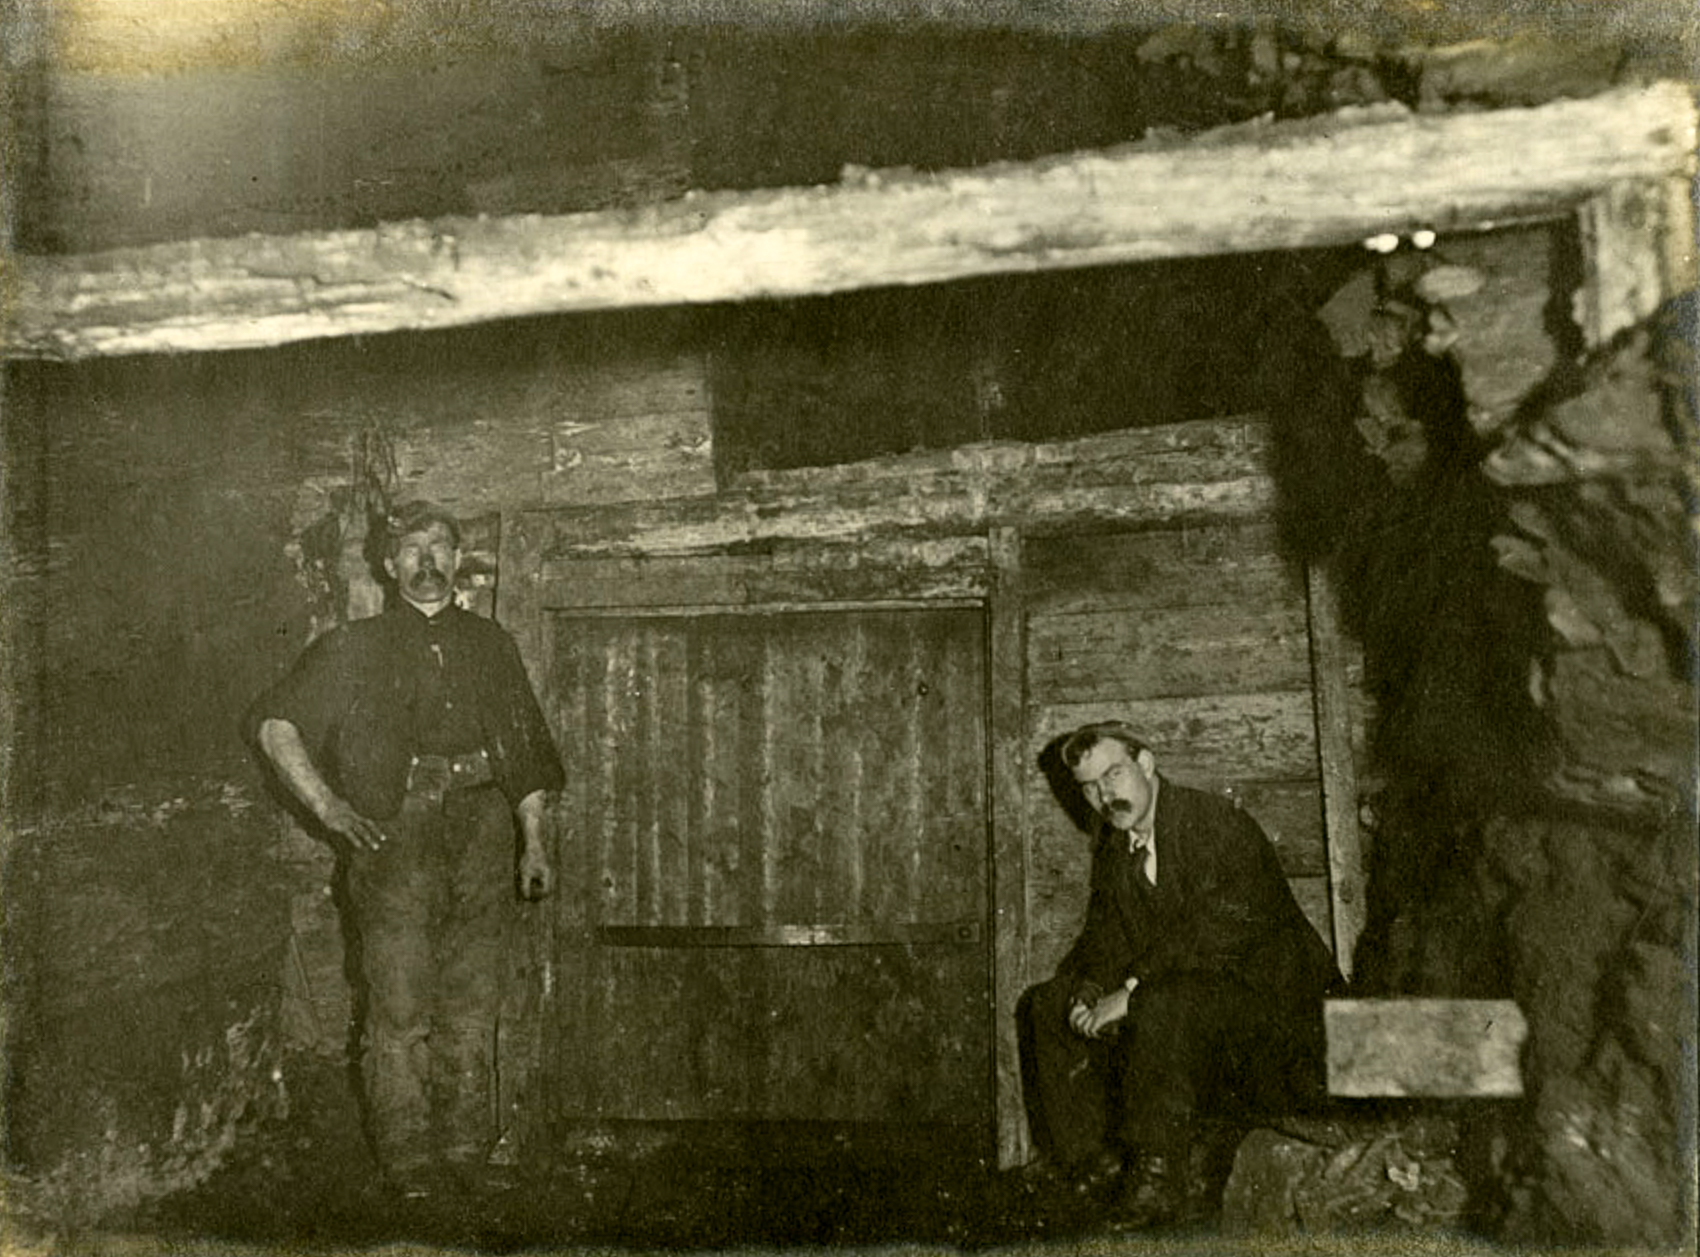 A trap door at Camp Colliery near Motherwell, around 1910.